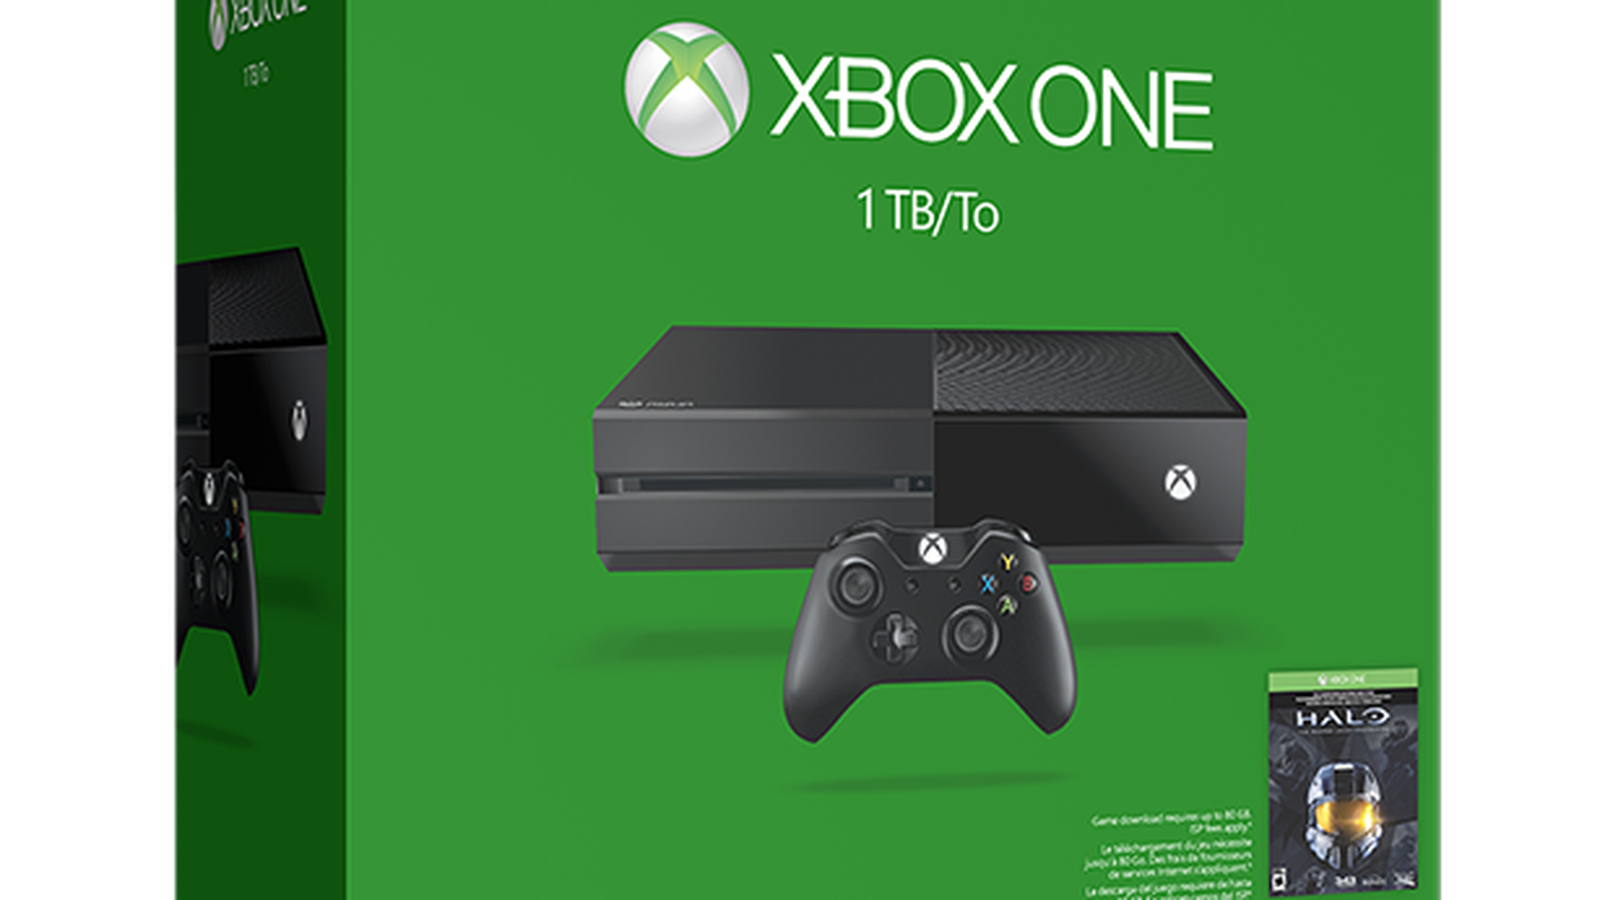 Xbox One gets price drop to $349, new 1TB version with new controller